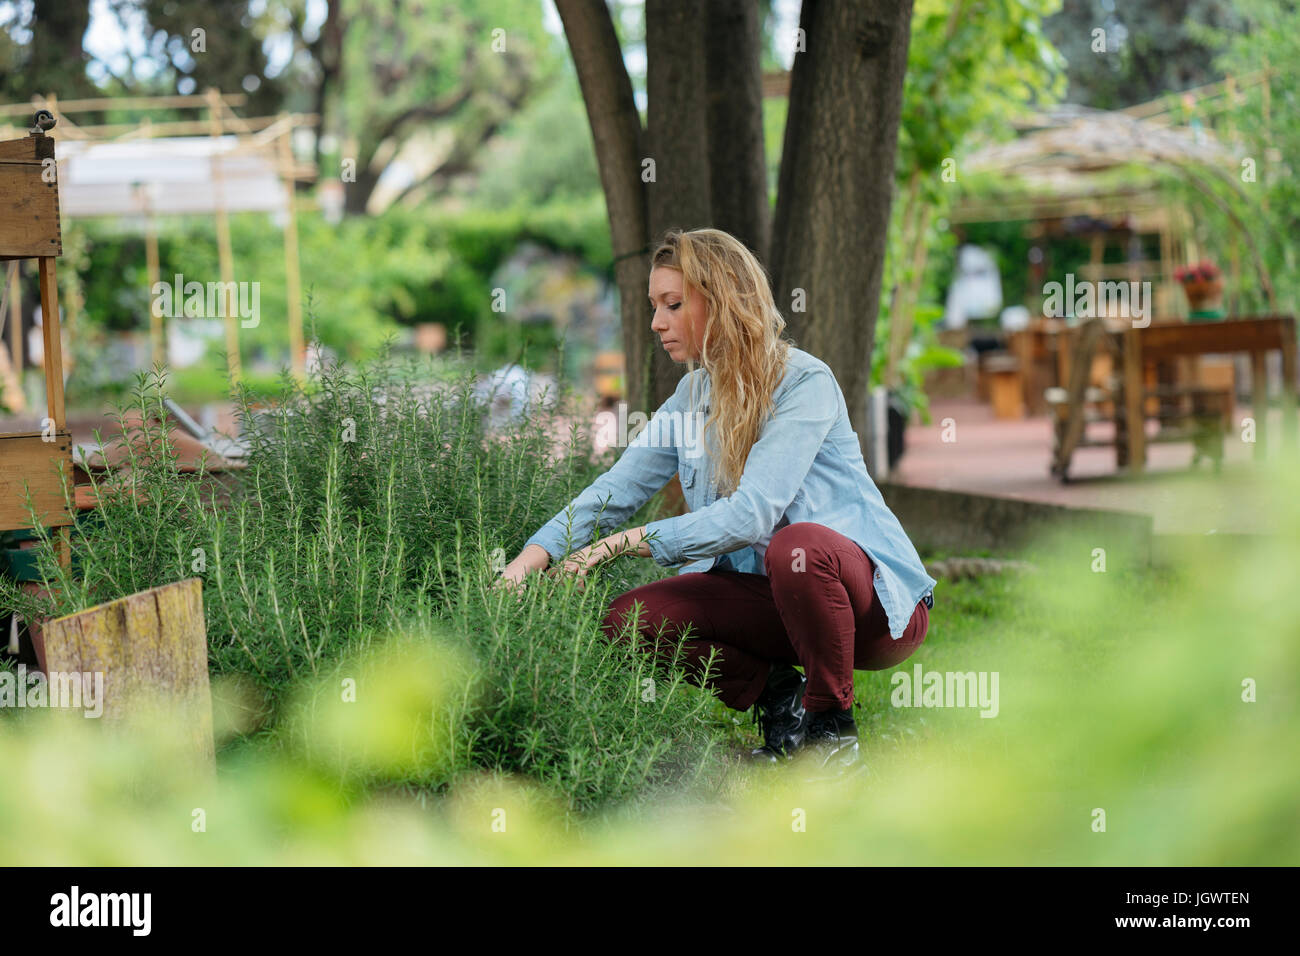 Young woman tending to plants in urban garden - Stock Image